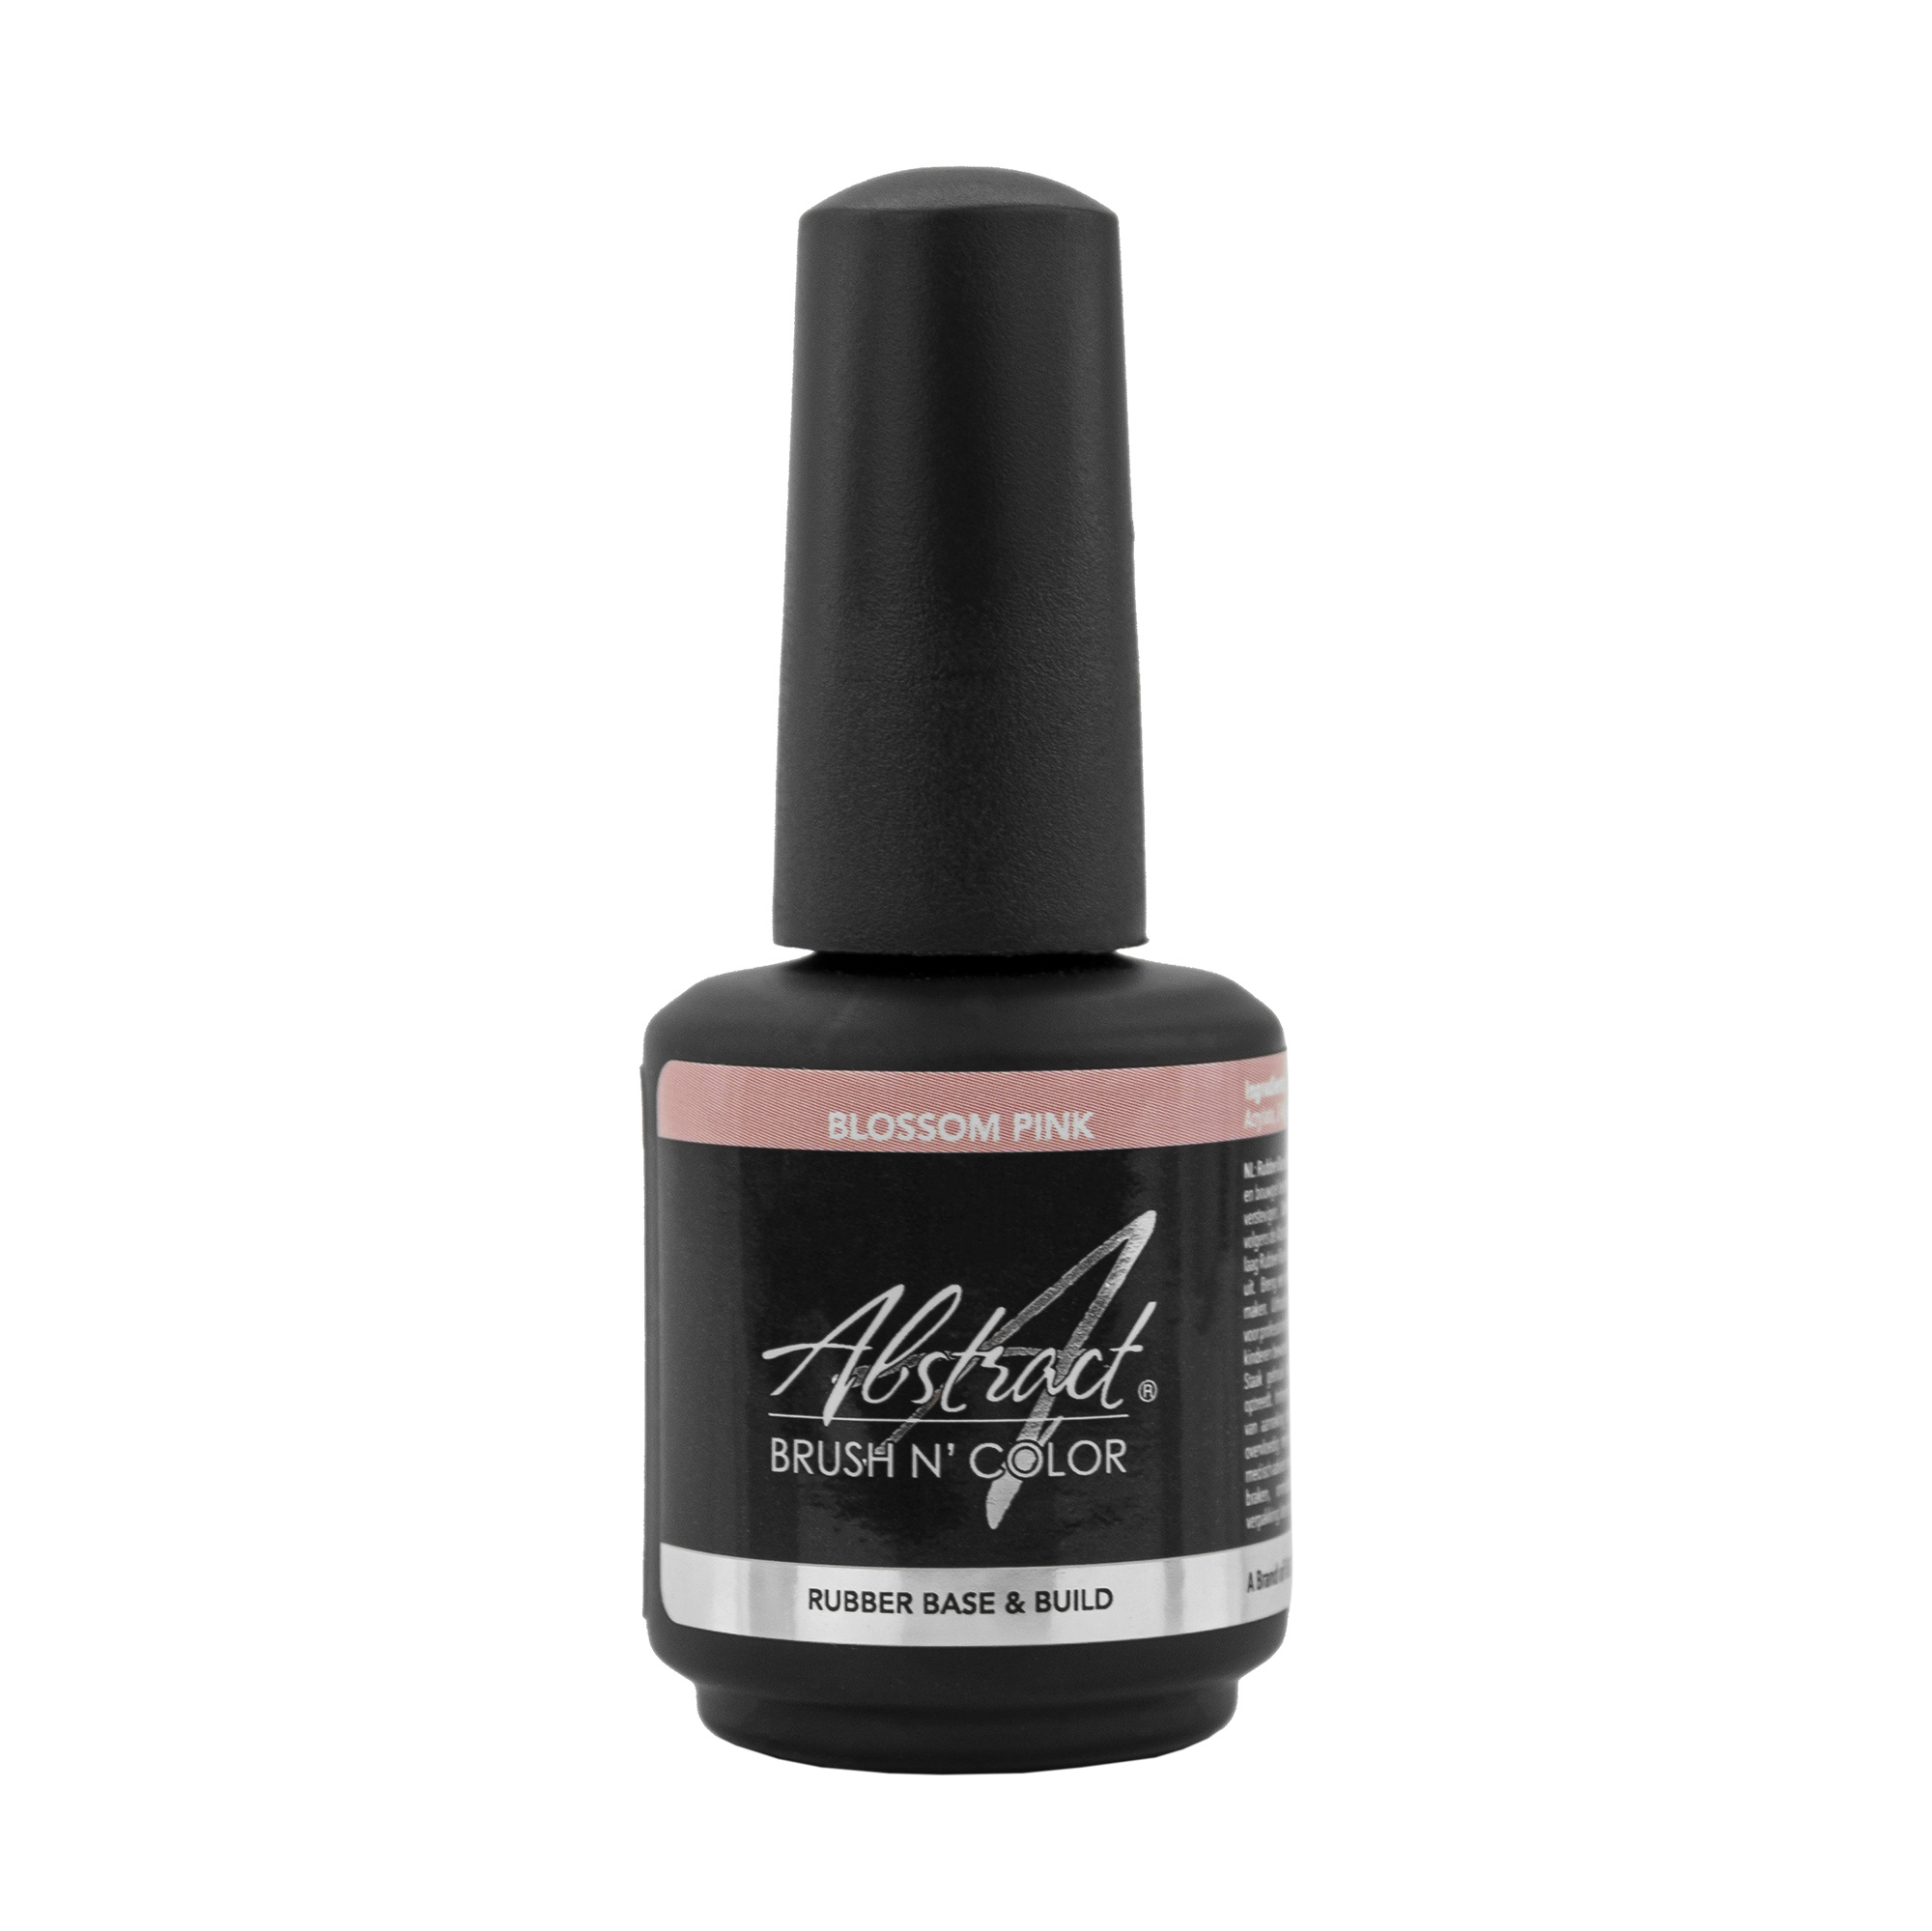 Abstract Brush N' Color 15 ml Rubber Base & Build - Blossom Pink